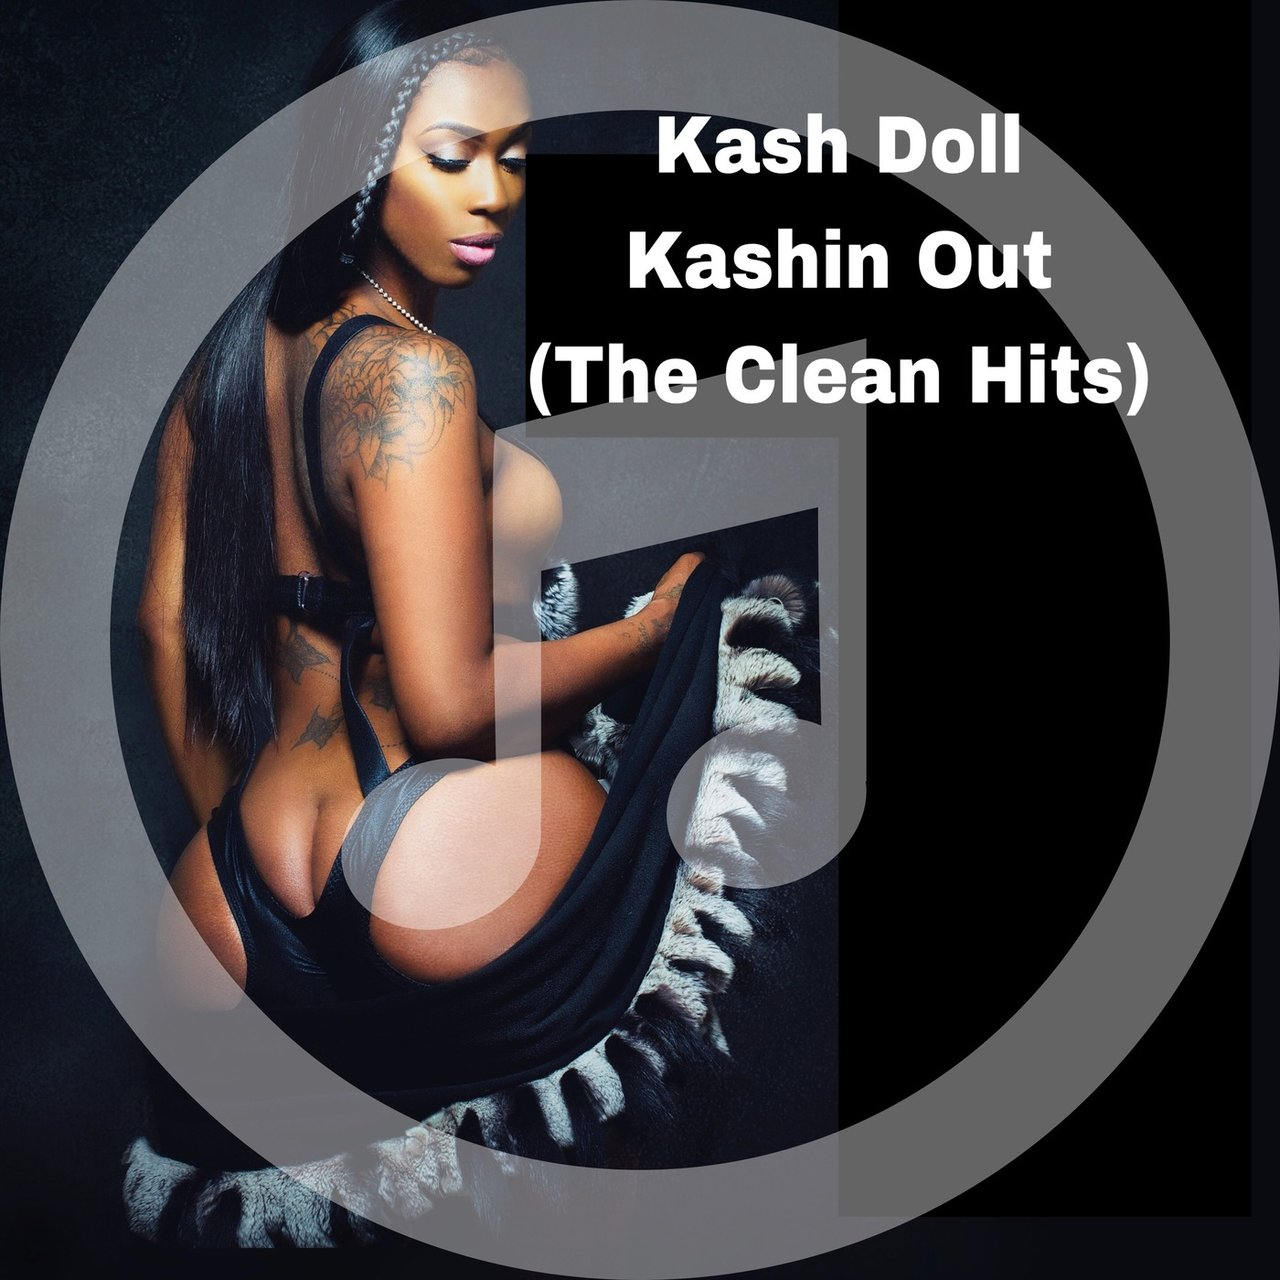 Kashin out (The Clean Hits)